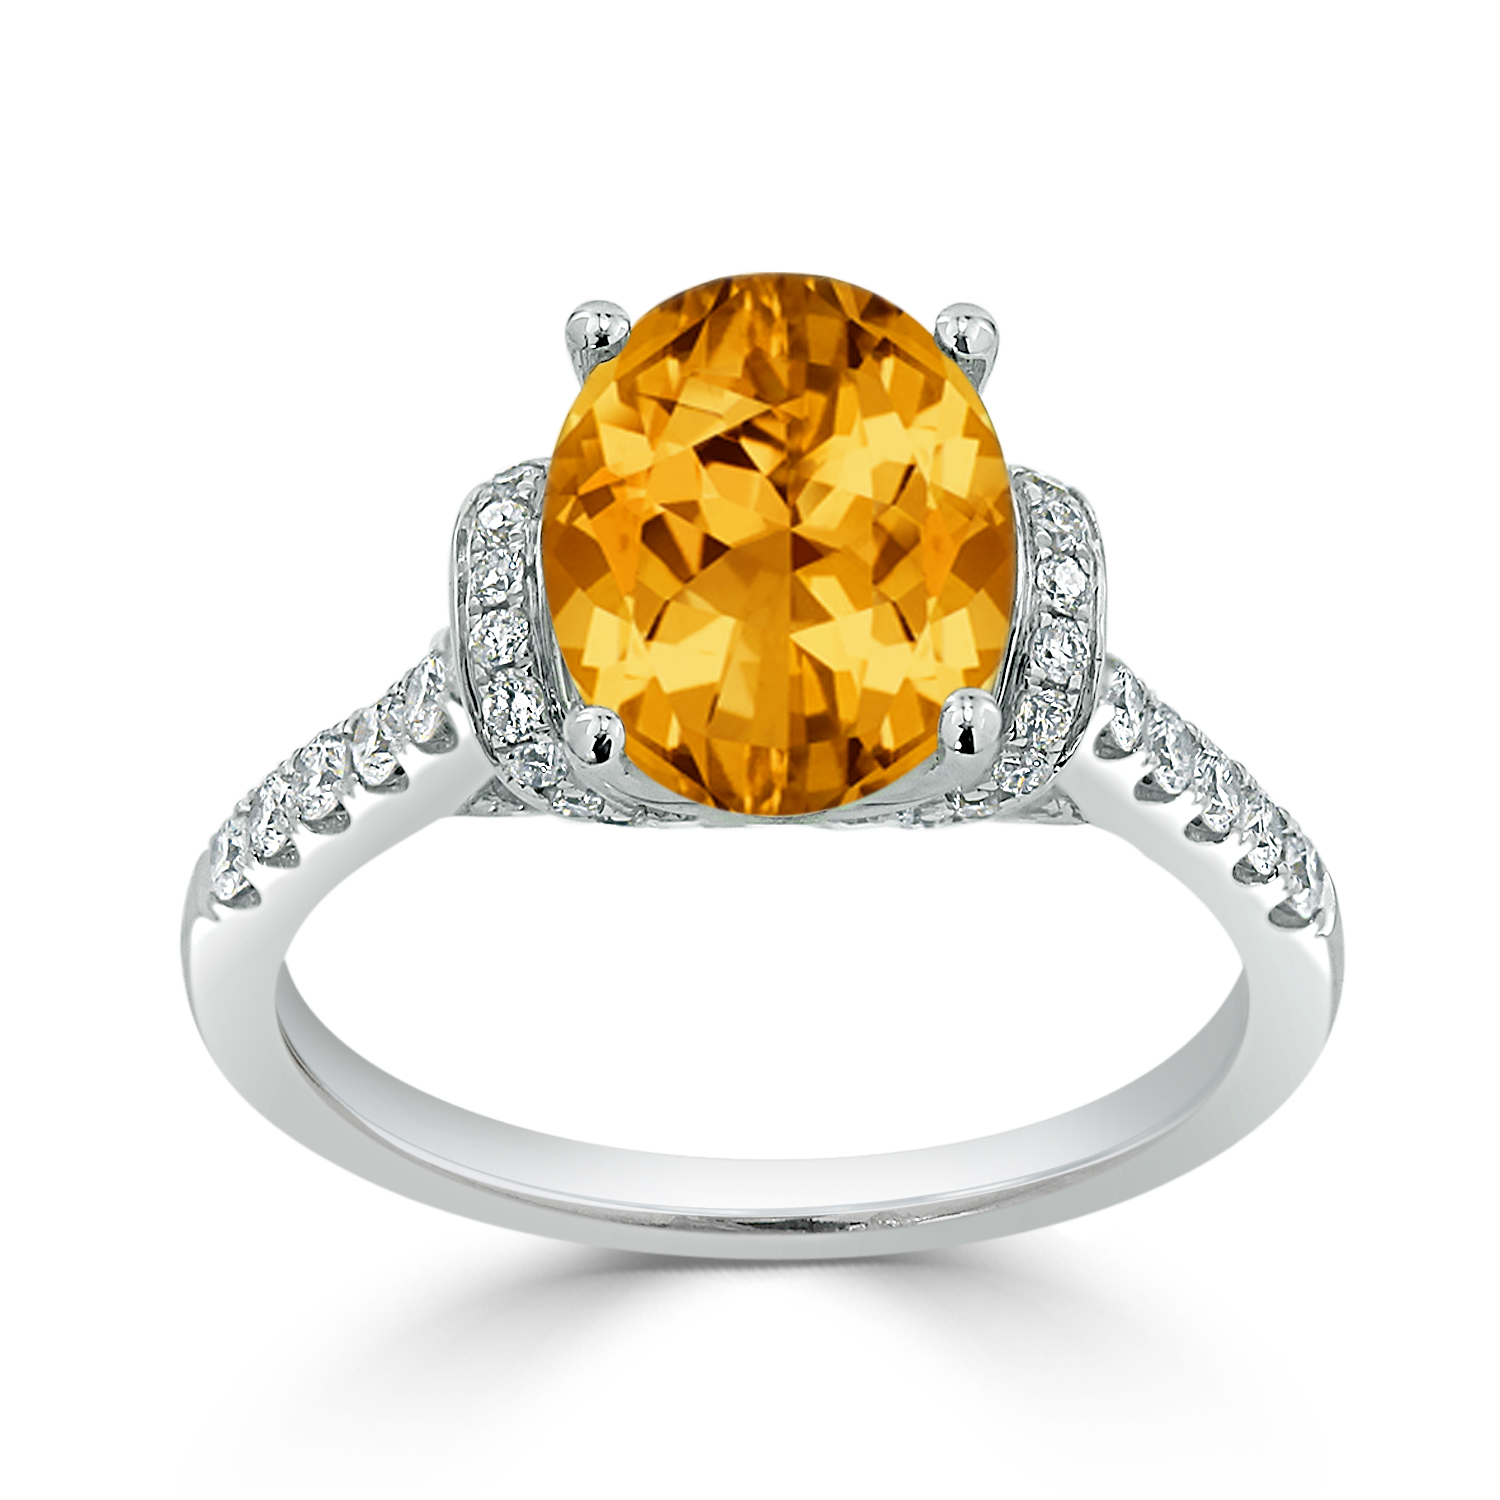 Halo Citrine Diamond Ring in 14K White Gold with 2.30 carat Oval Citrine